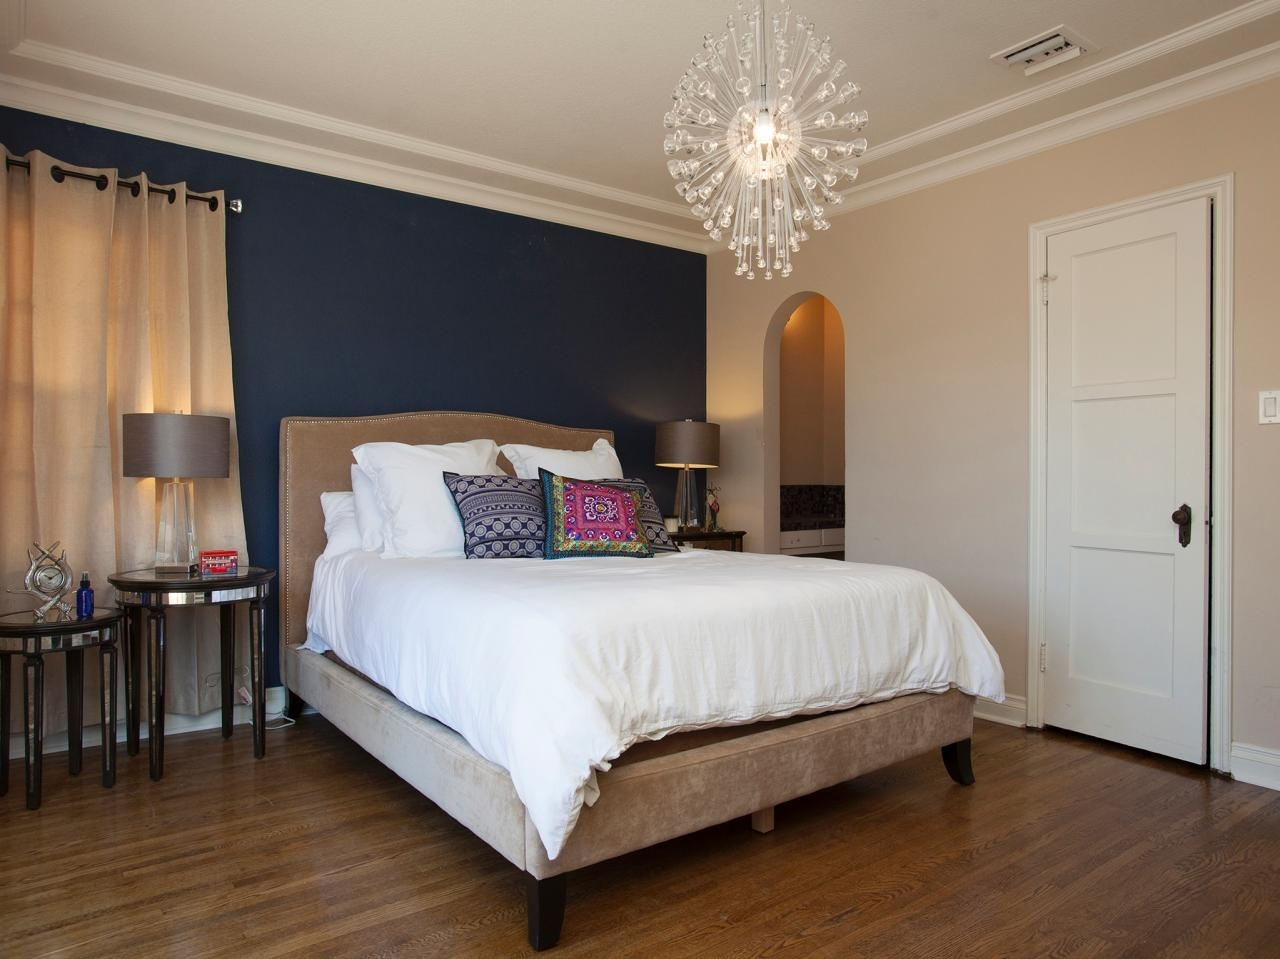 Mesmerizing Bedroom Interior Design With Black Beige Painted Wall Pertaining To Newest Wall Accents For Beige Room (View 5 of 15)